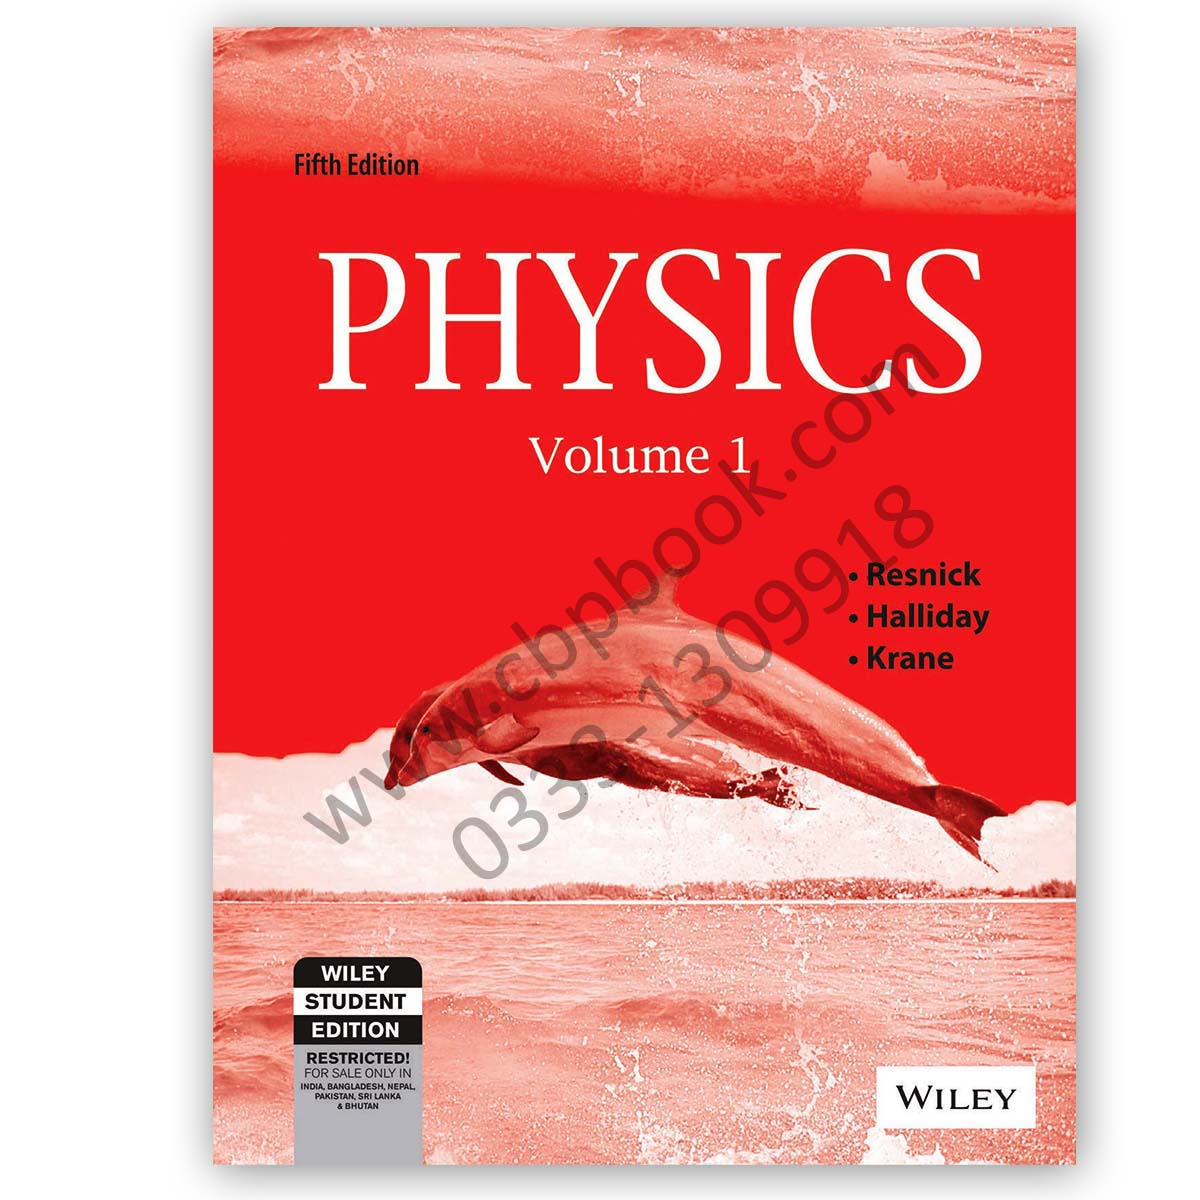 PHYSICS Volume 1 & 2 Fifth Edition RESNICK, HALLIDAY, KRANE - WILEY